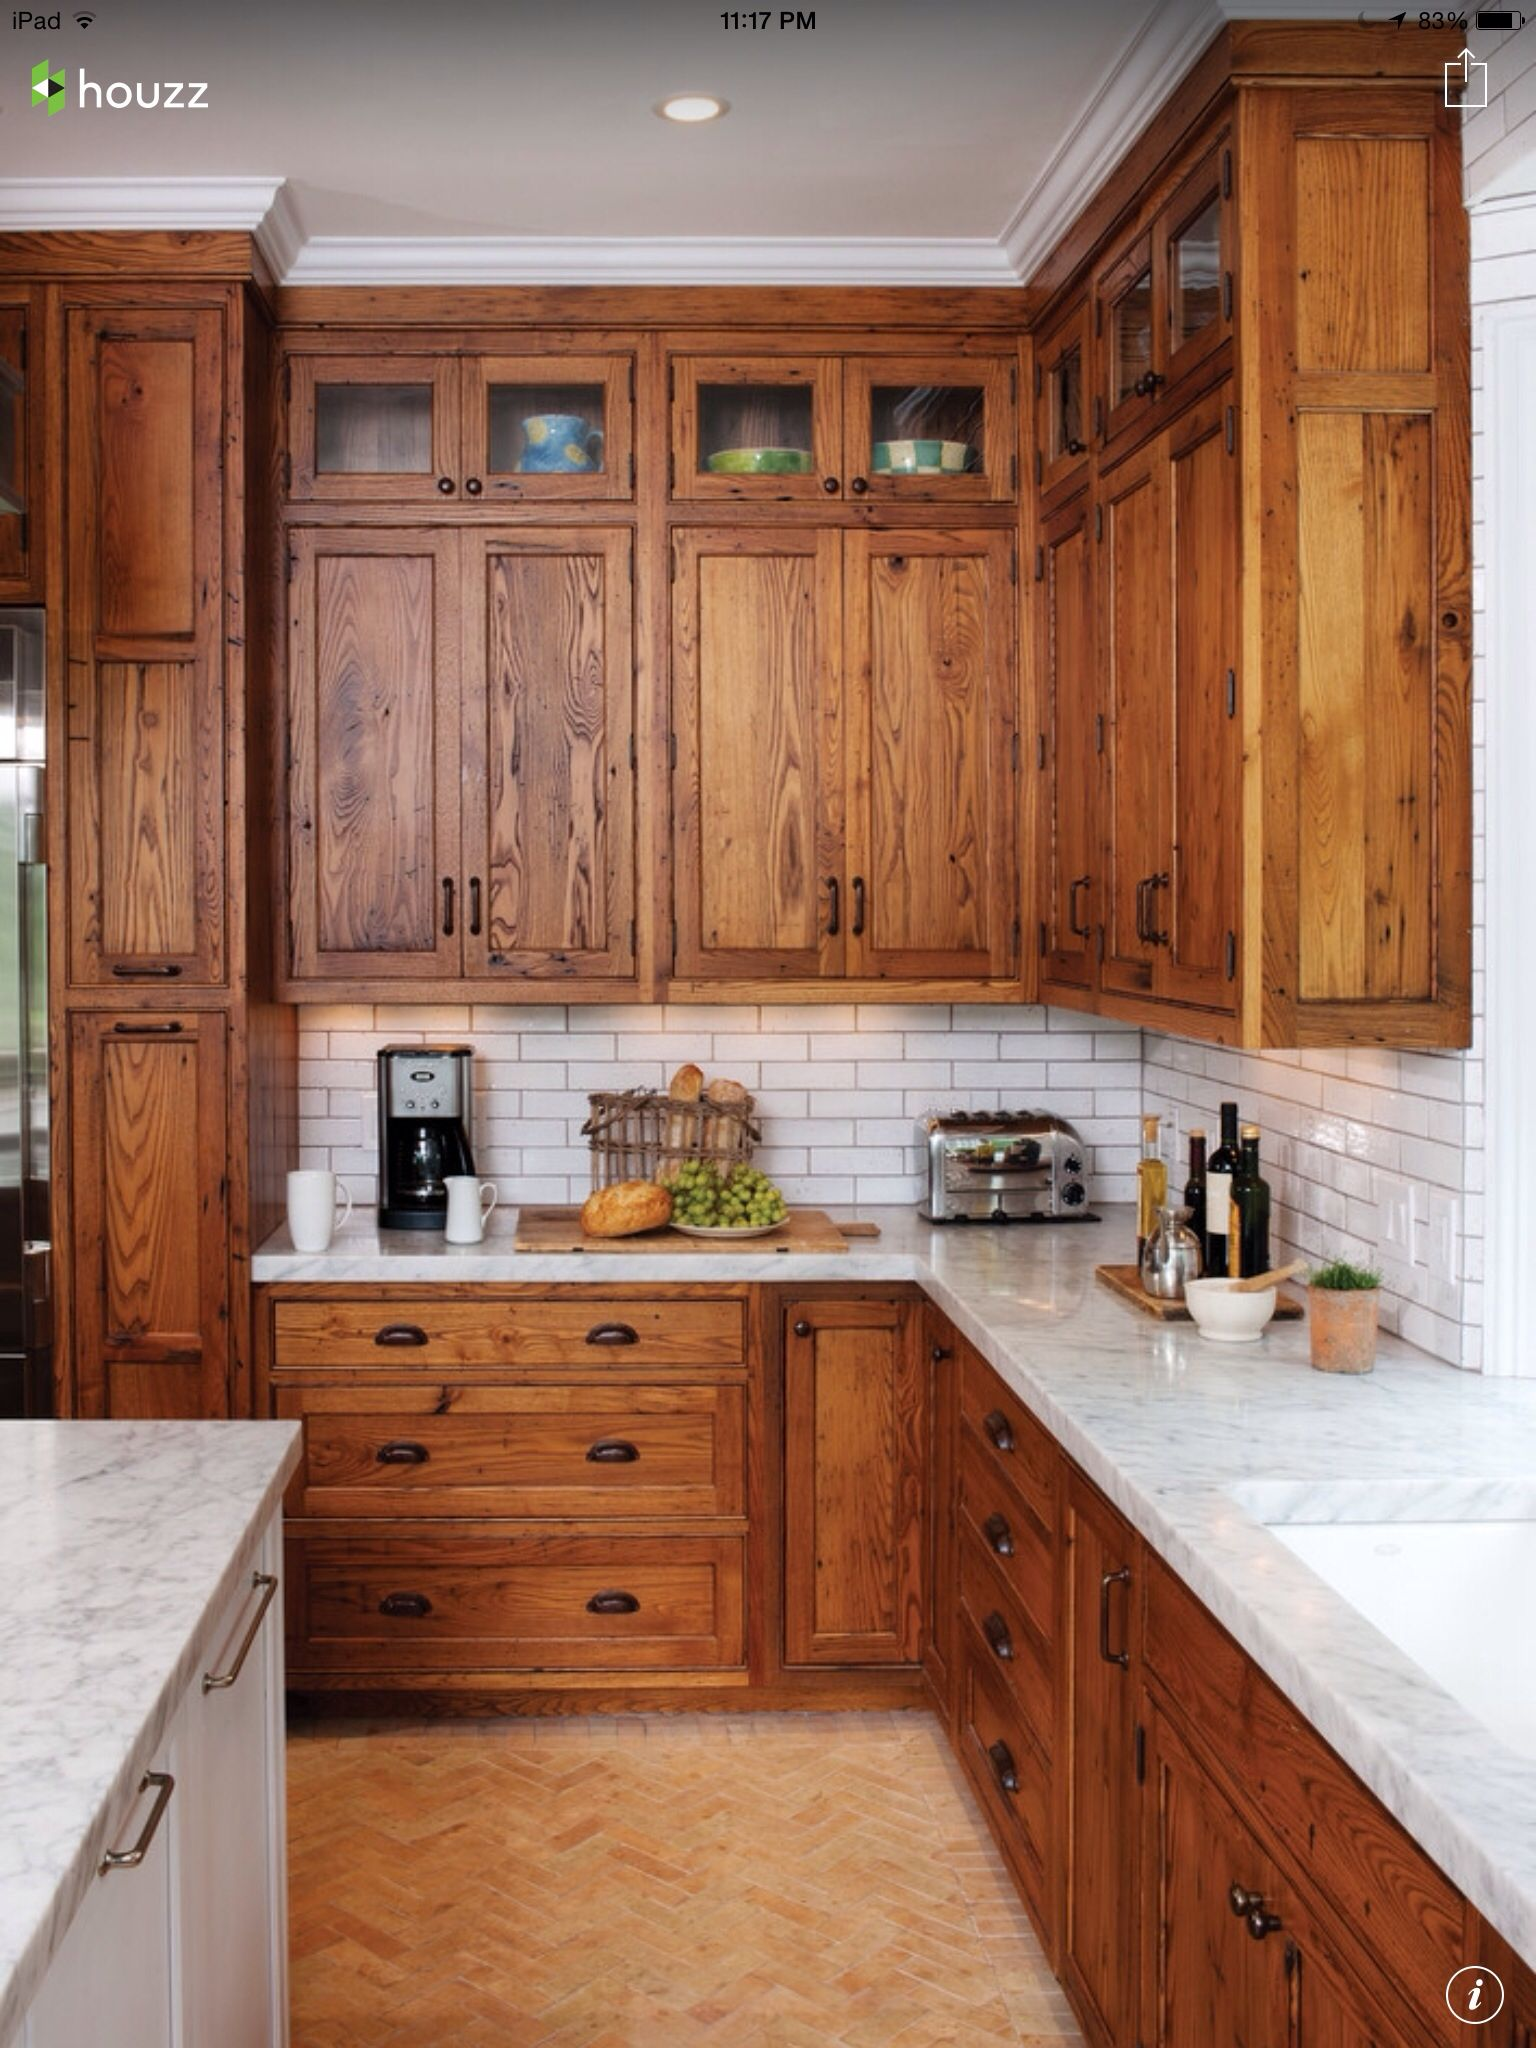 Rich Oiled Wood Shaker Cabinets With White Tile Backsplash And Marble Countertop Kitchen Cabinet Design Rustic Kitchen Cabinets Rustic Kitchen